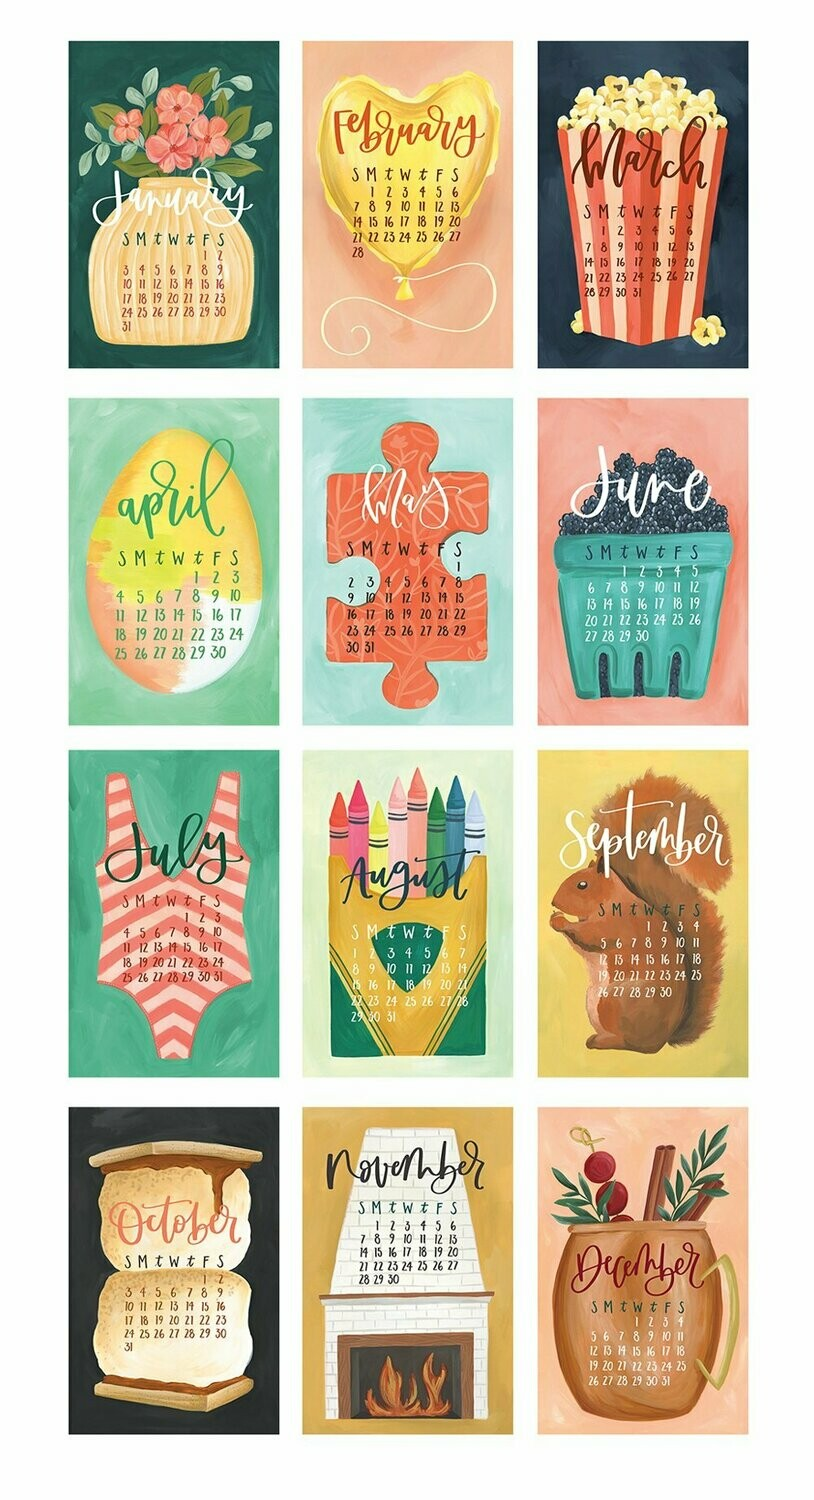 XL Wall Calendar: Gather w/ hanger